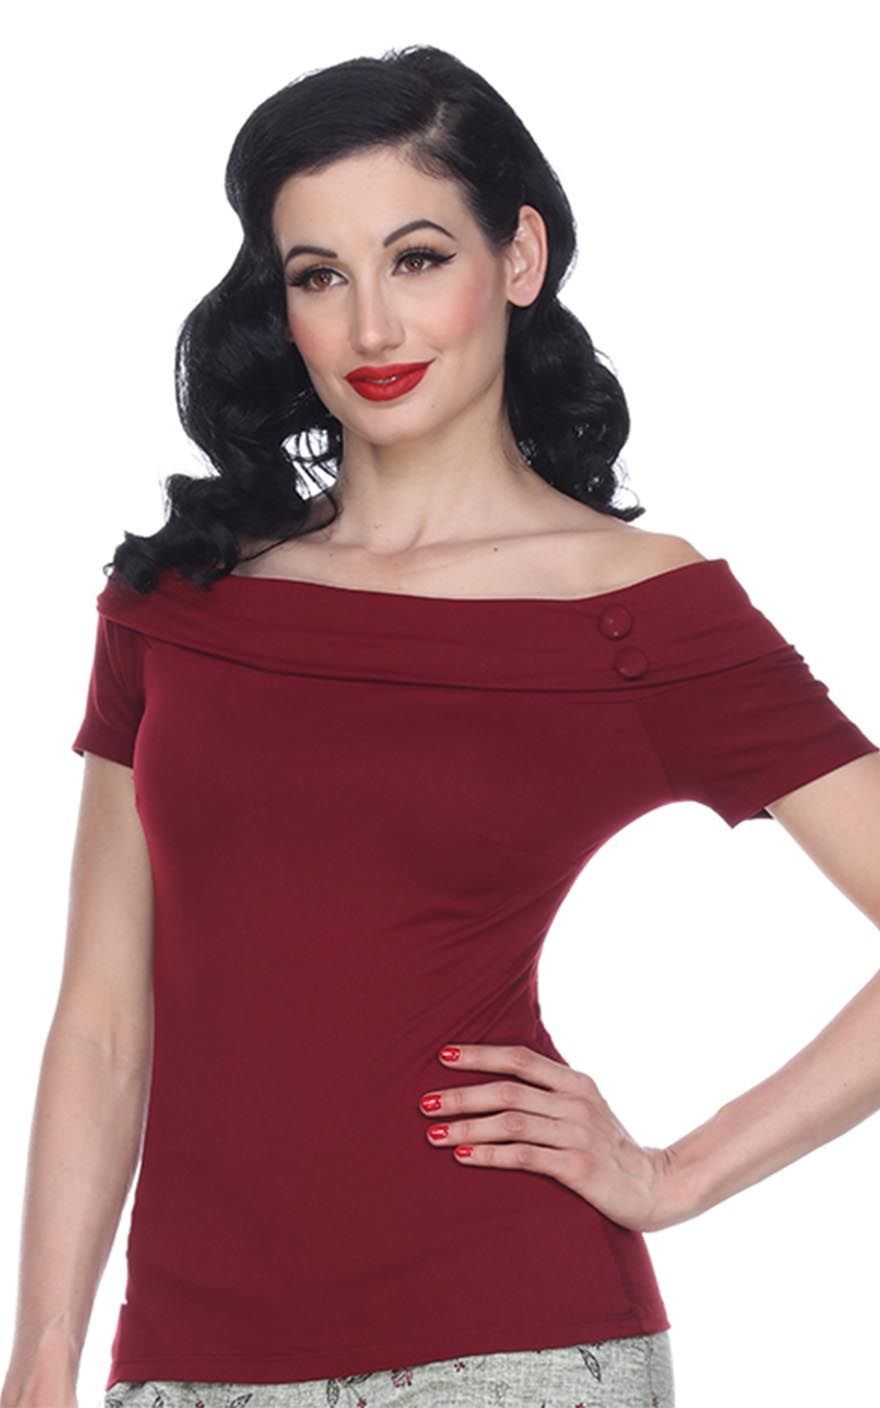 Bettie Page Hd bettie page clothing - debby top, merlot